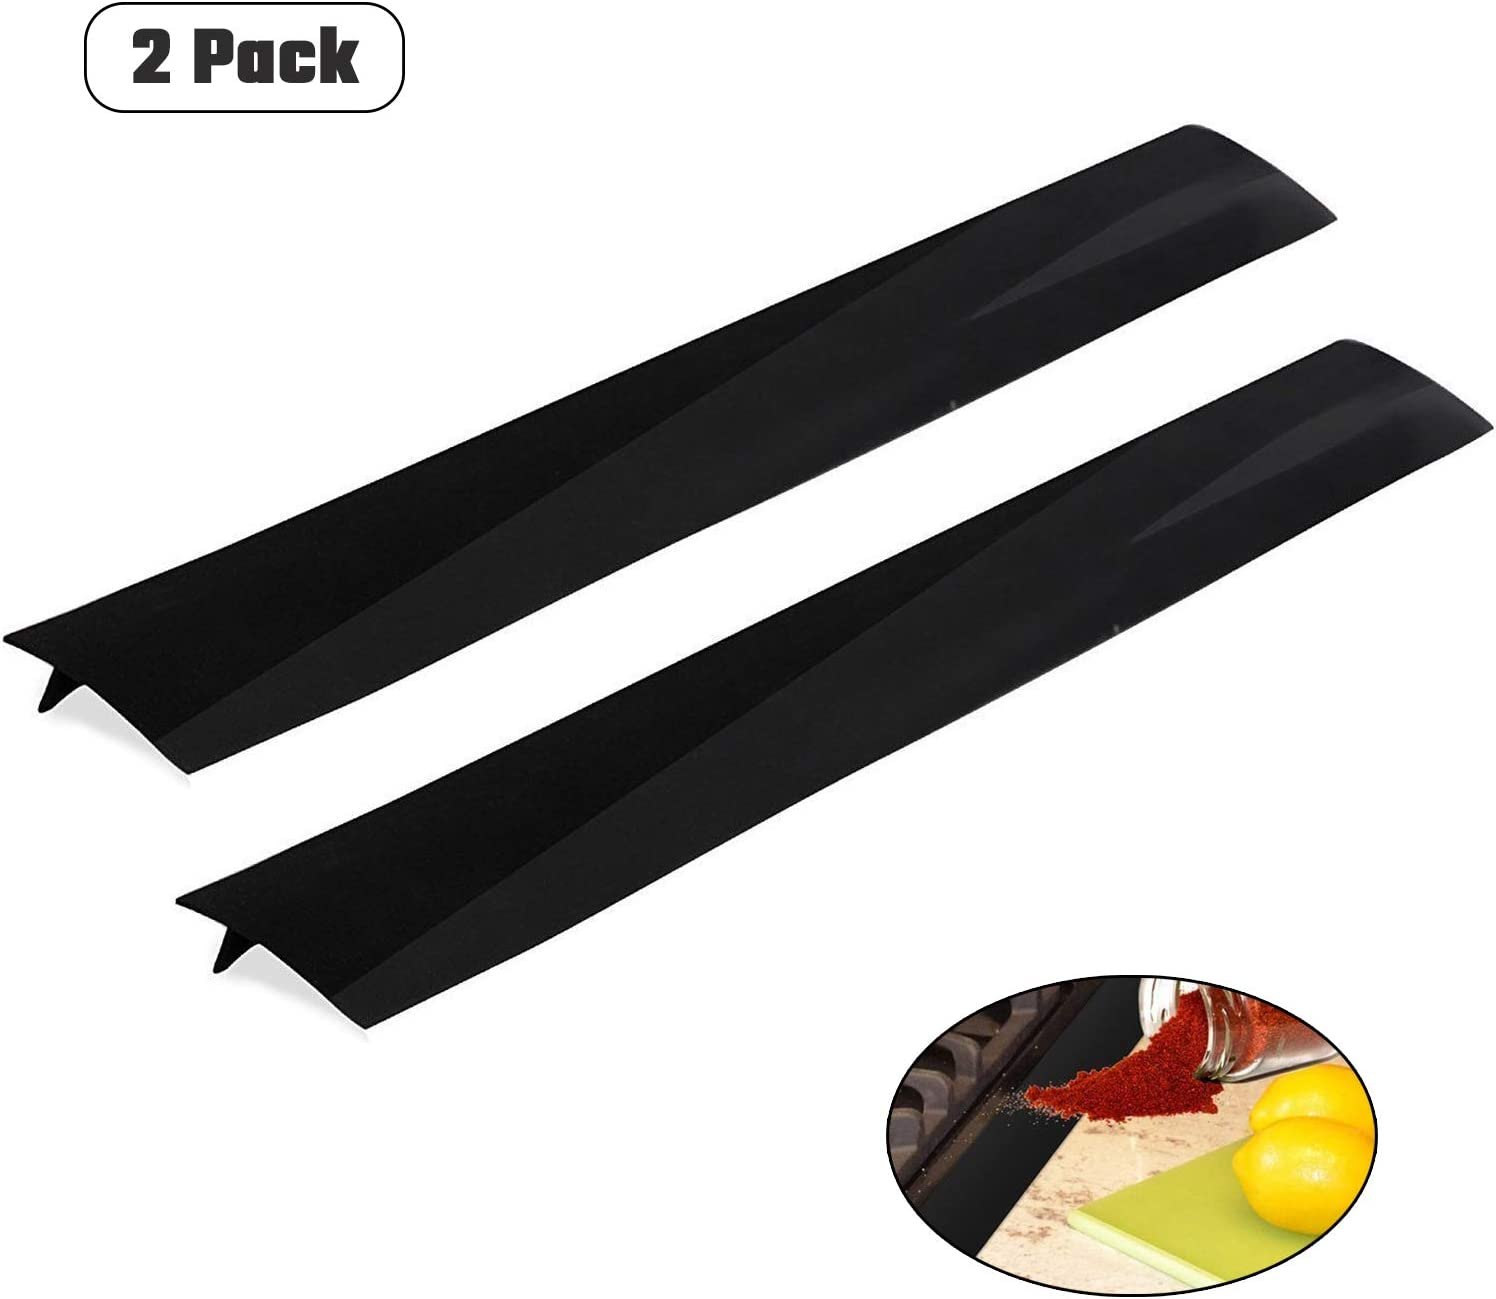 2 Pack Silicone Kitchen Stove Counter Gap Cover Long & Wide Gap Filler(21 inches) Heat-Resistant and Easy Clean for Stovetops, Washing Machines, Oven, Washer, Dryer(Black)